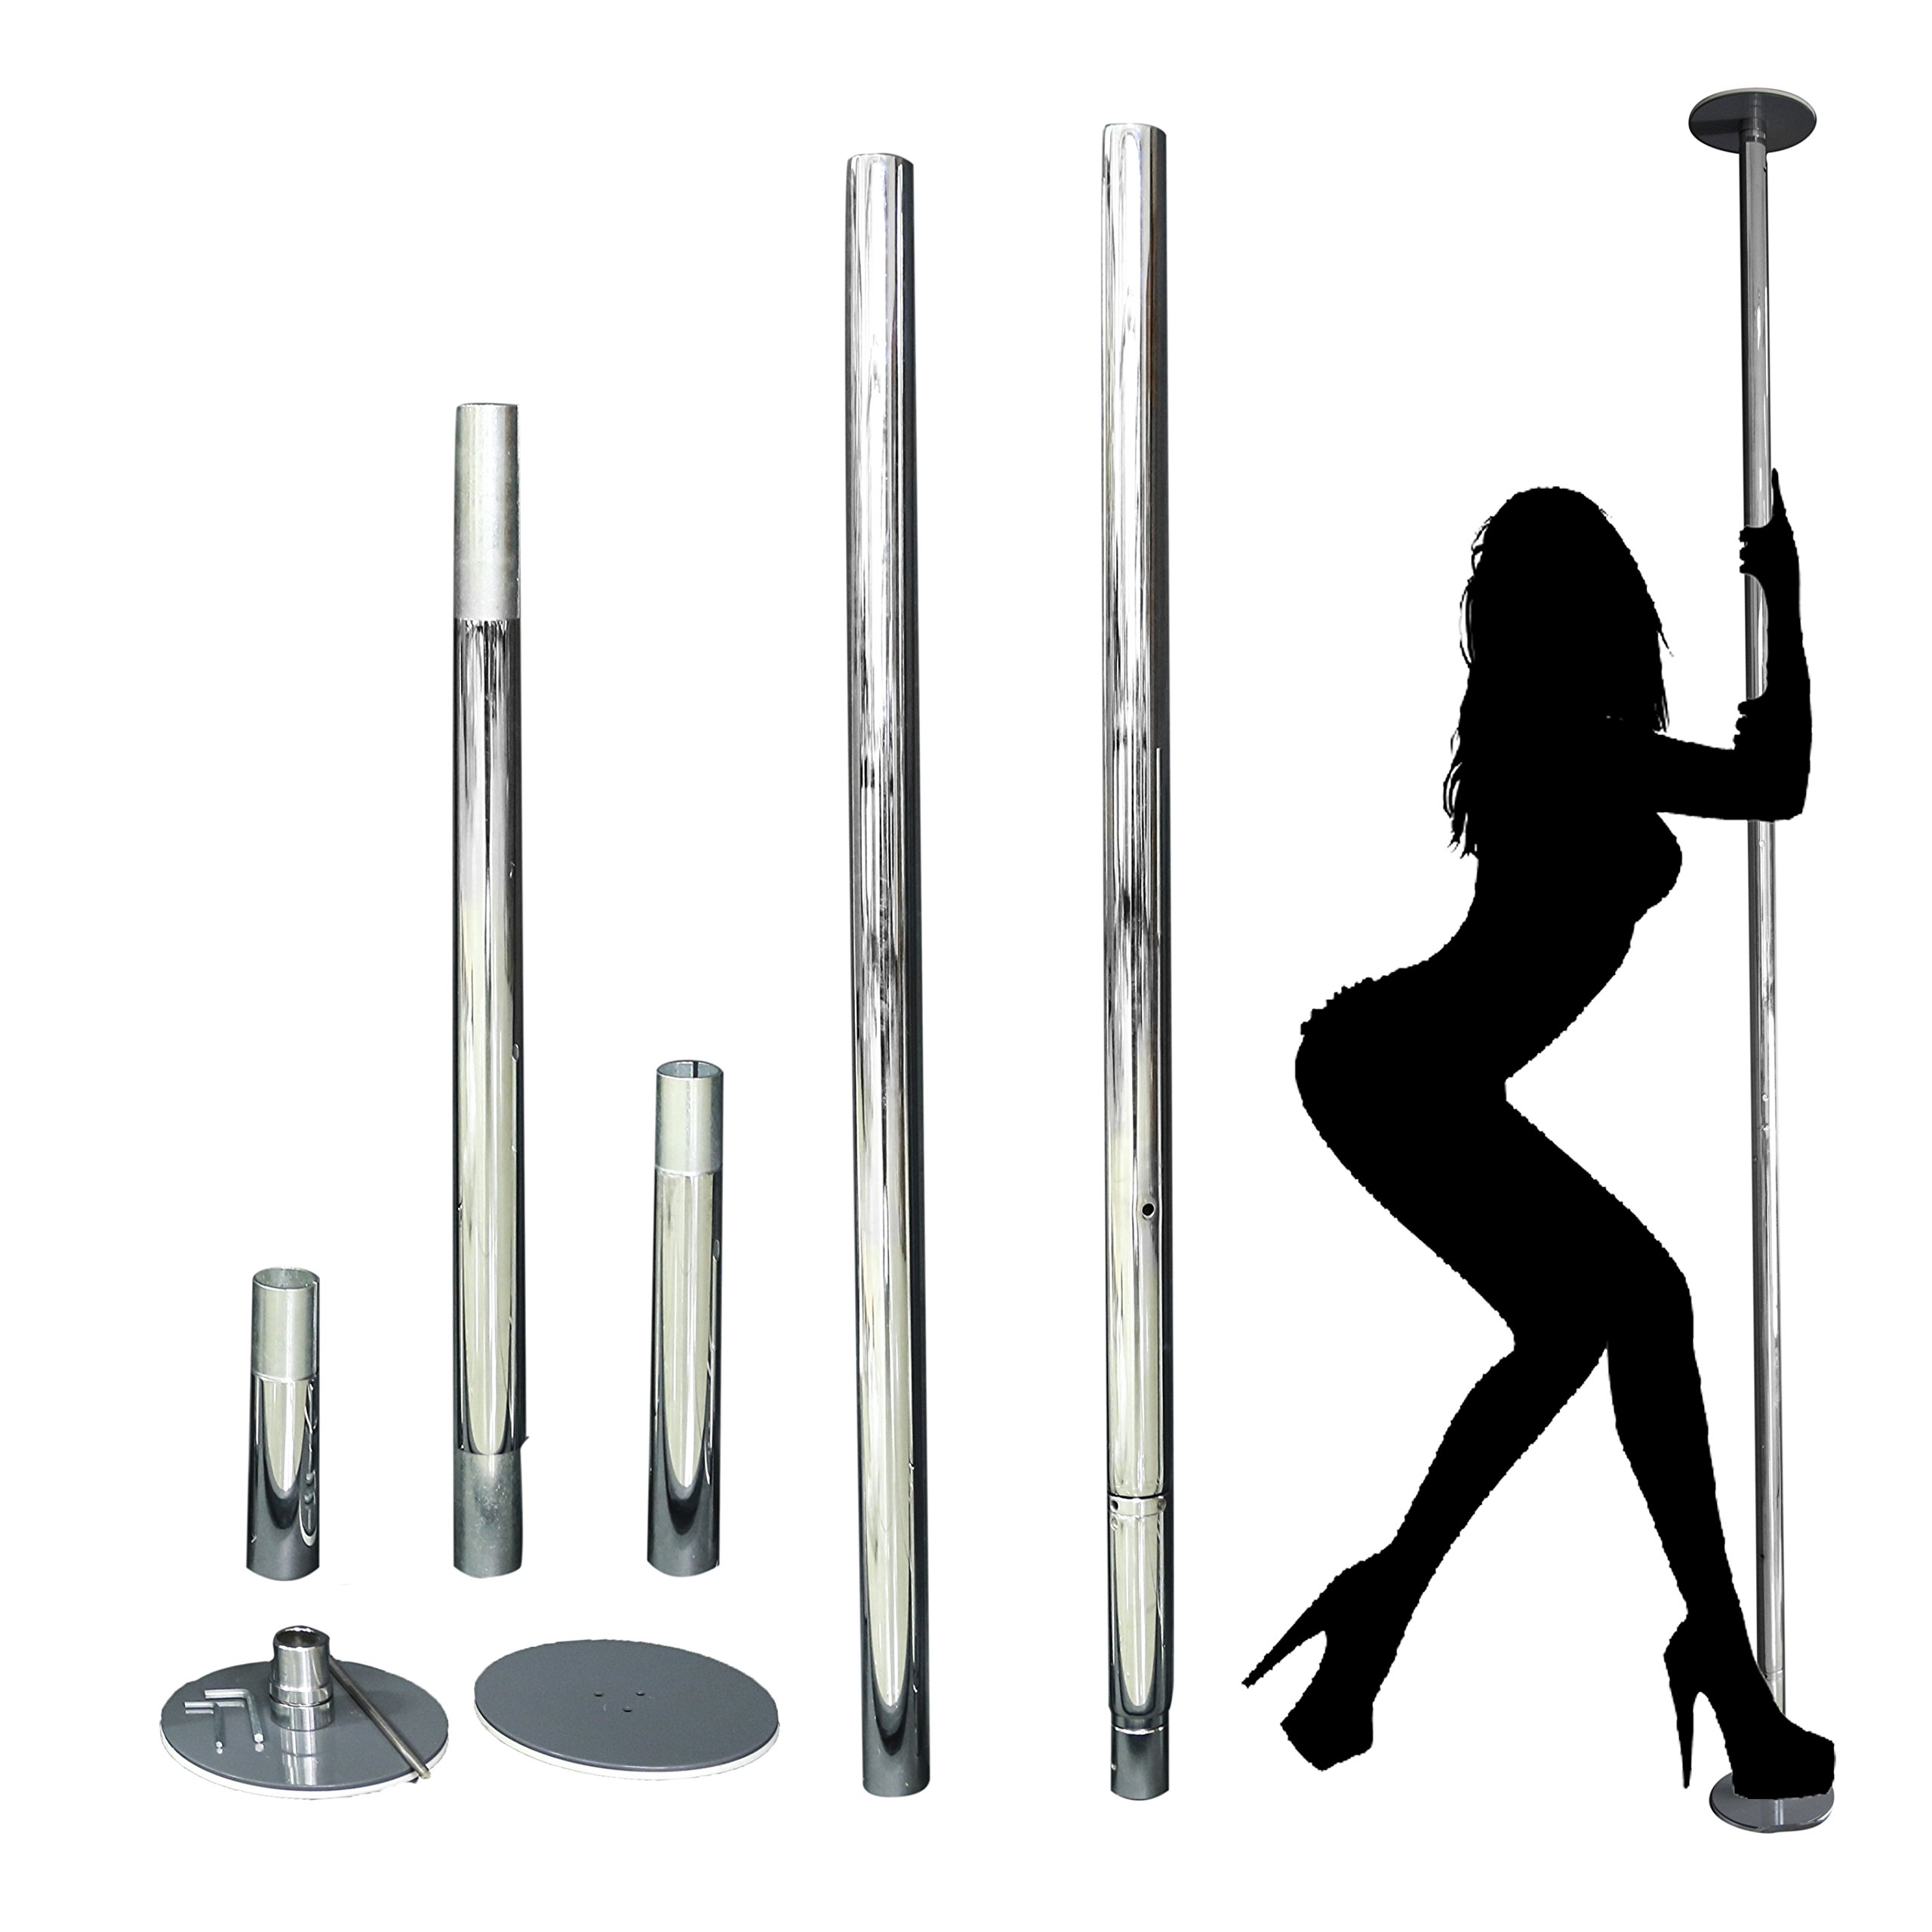 HETHRONE Professional Rotary Stationary Dancing Pole 45mm 1.5 thickness Spinning & Static